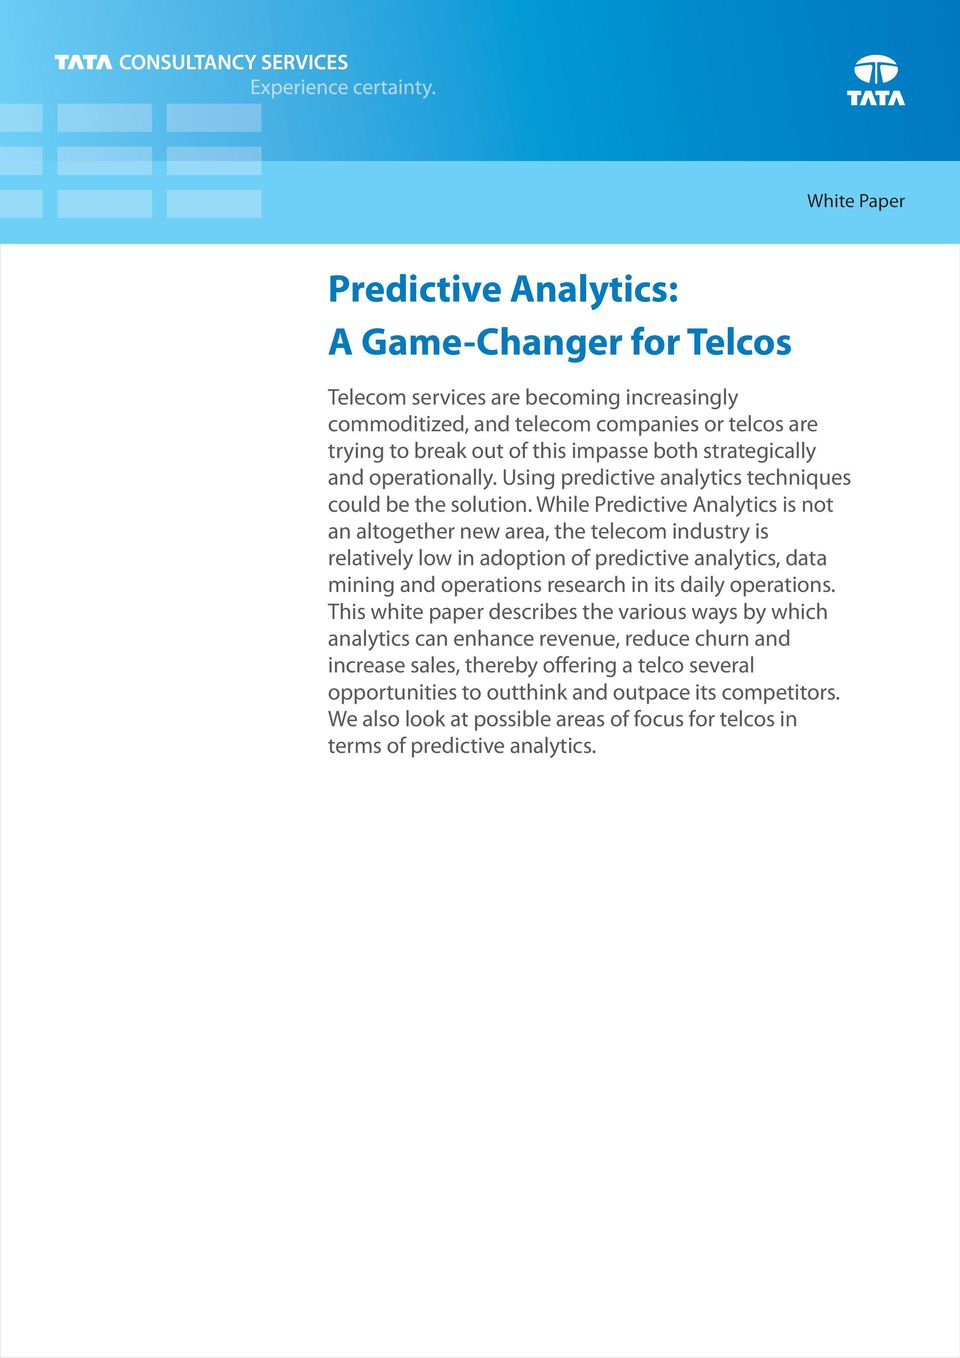 While Predictive Analytics is not an altogether new area, the telecom industry is relatively low in adoption of predictive analytics, data mining and operations research in its daily